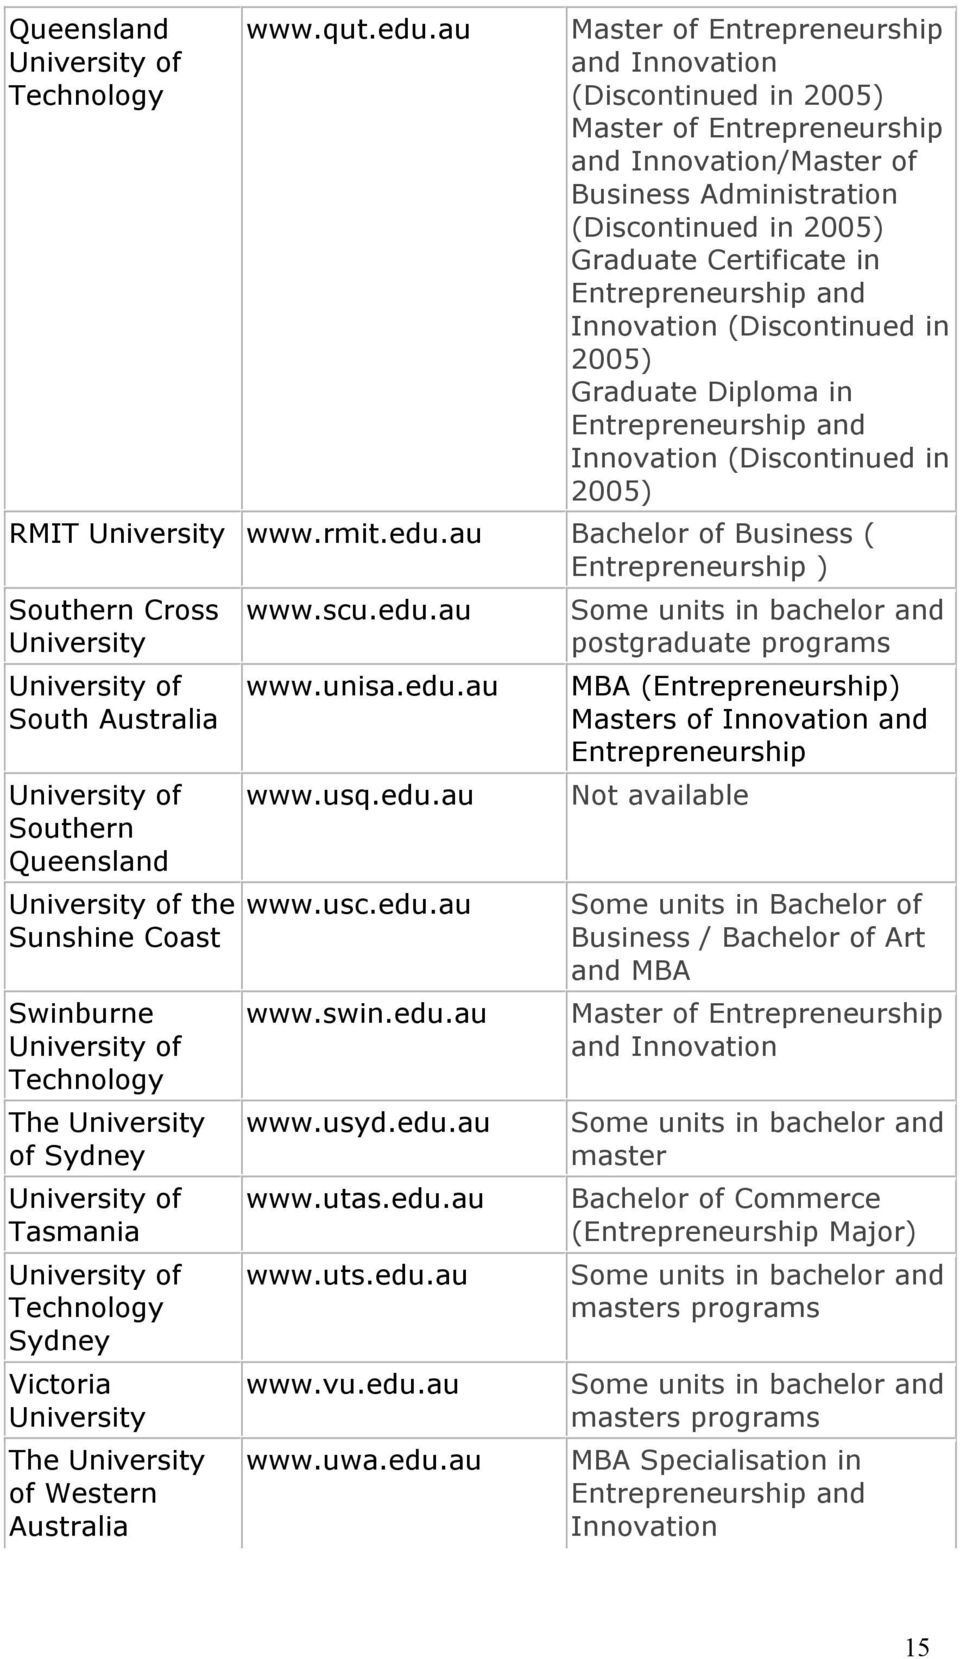 Entrepreneurship and Innovation (Discontinued in 2005) Graduate Diploma in Entrepreneurship and Innovation (Discontinued in 2005) RMIT www.rmit.edu.